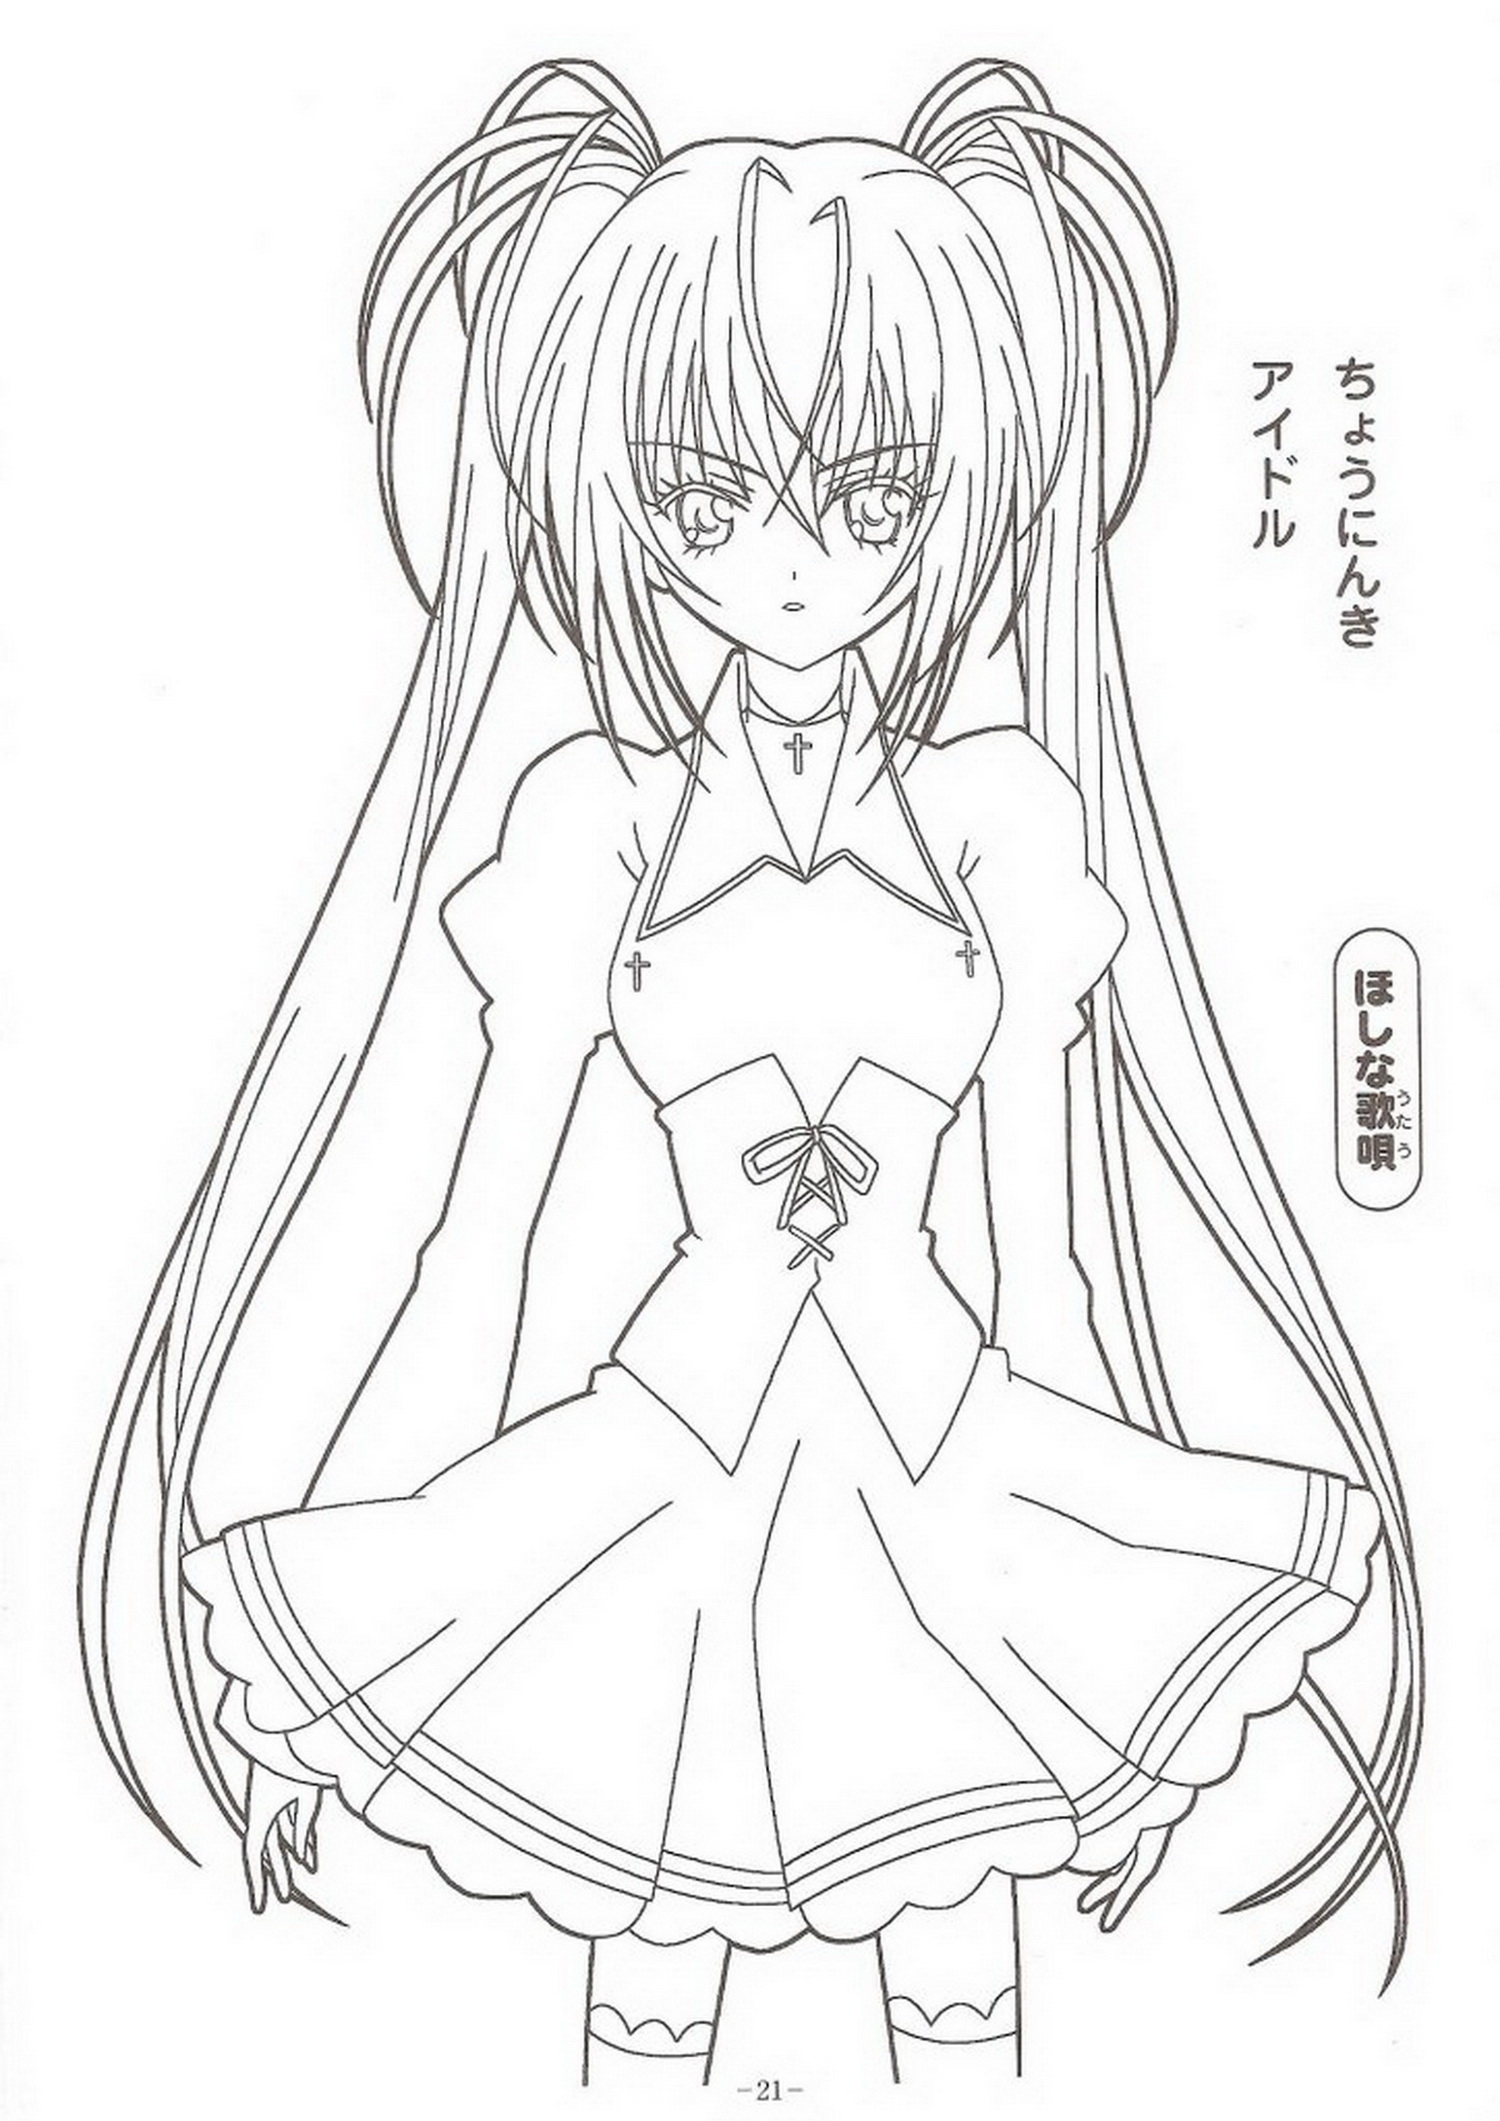 Immagini da colorare shugo chara for Fnaf anime coloring pages